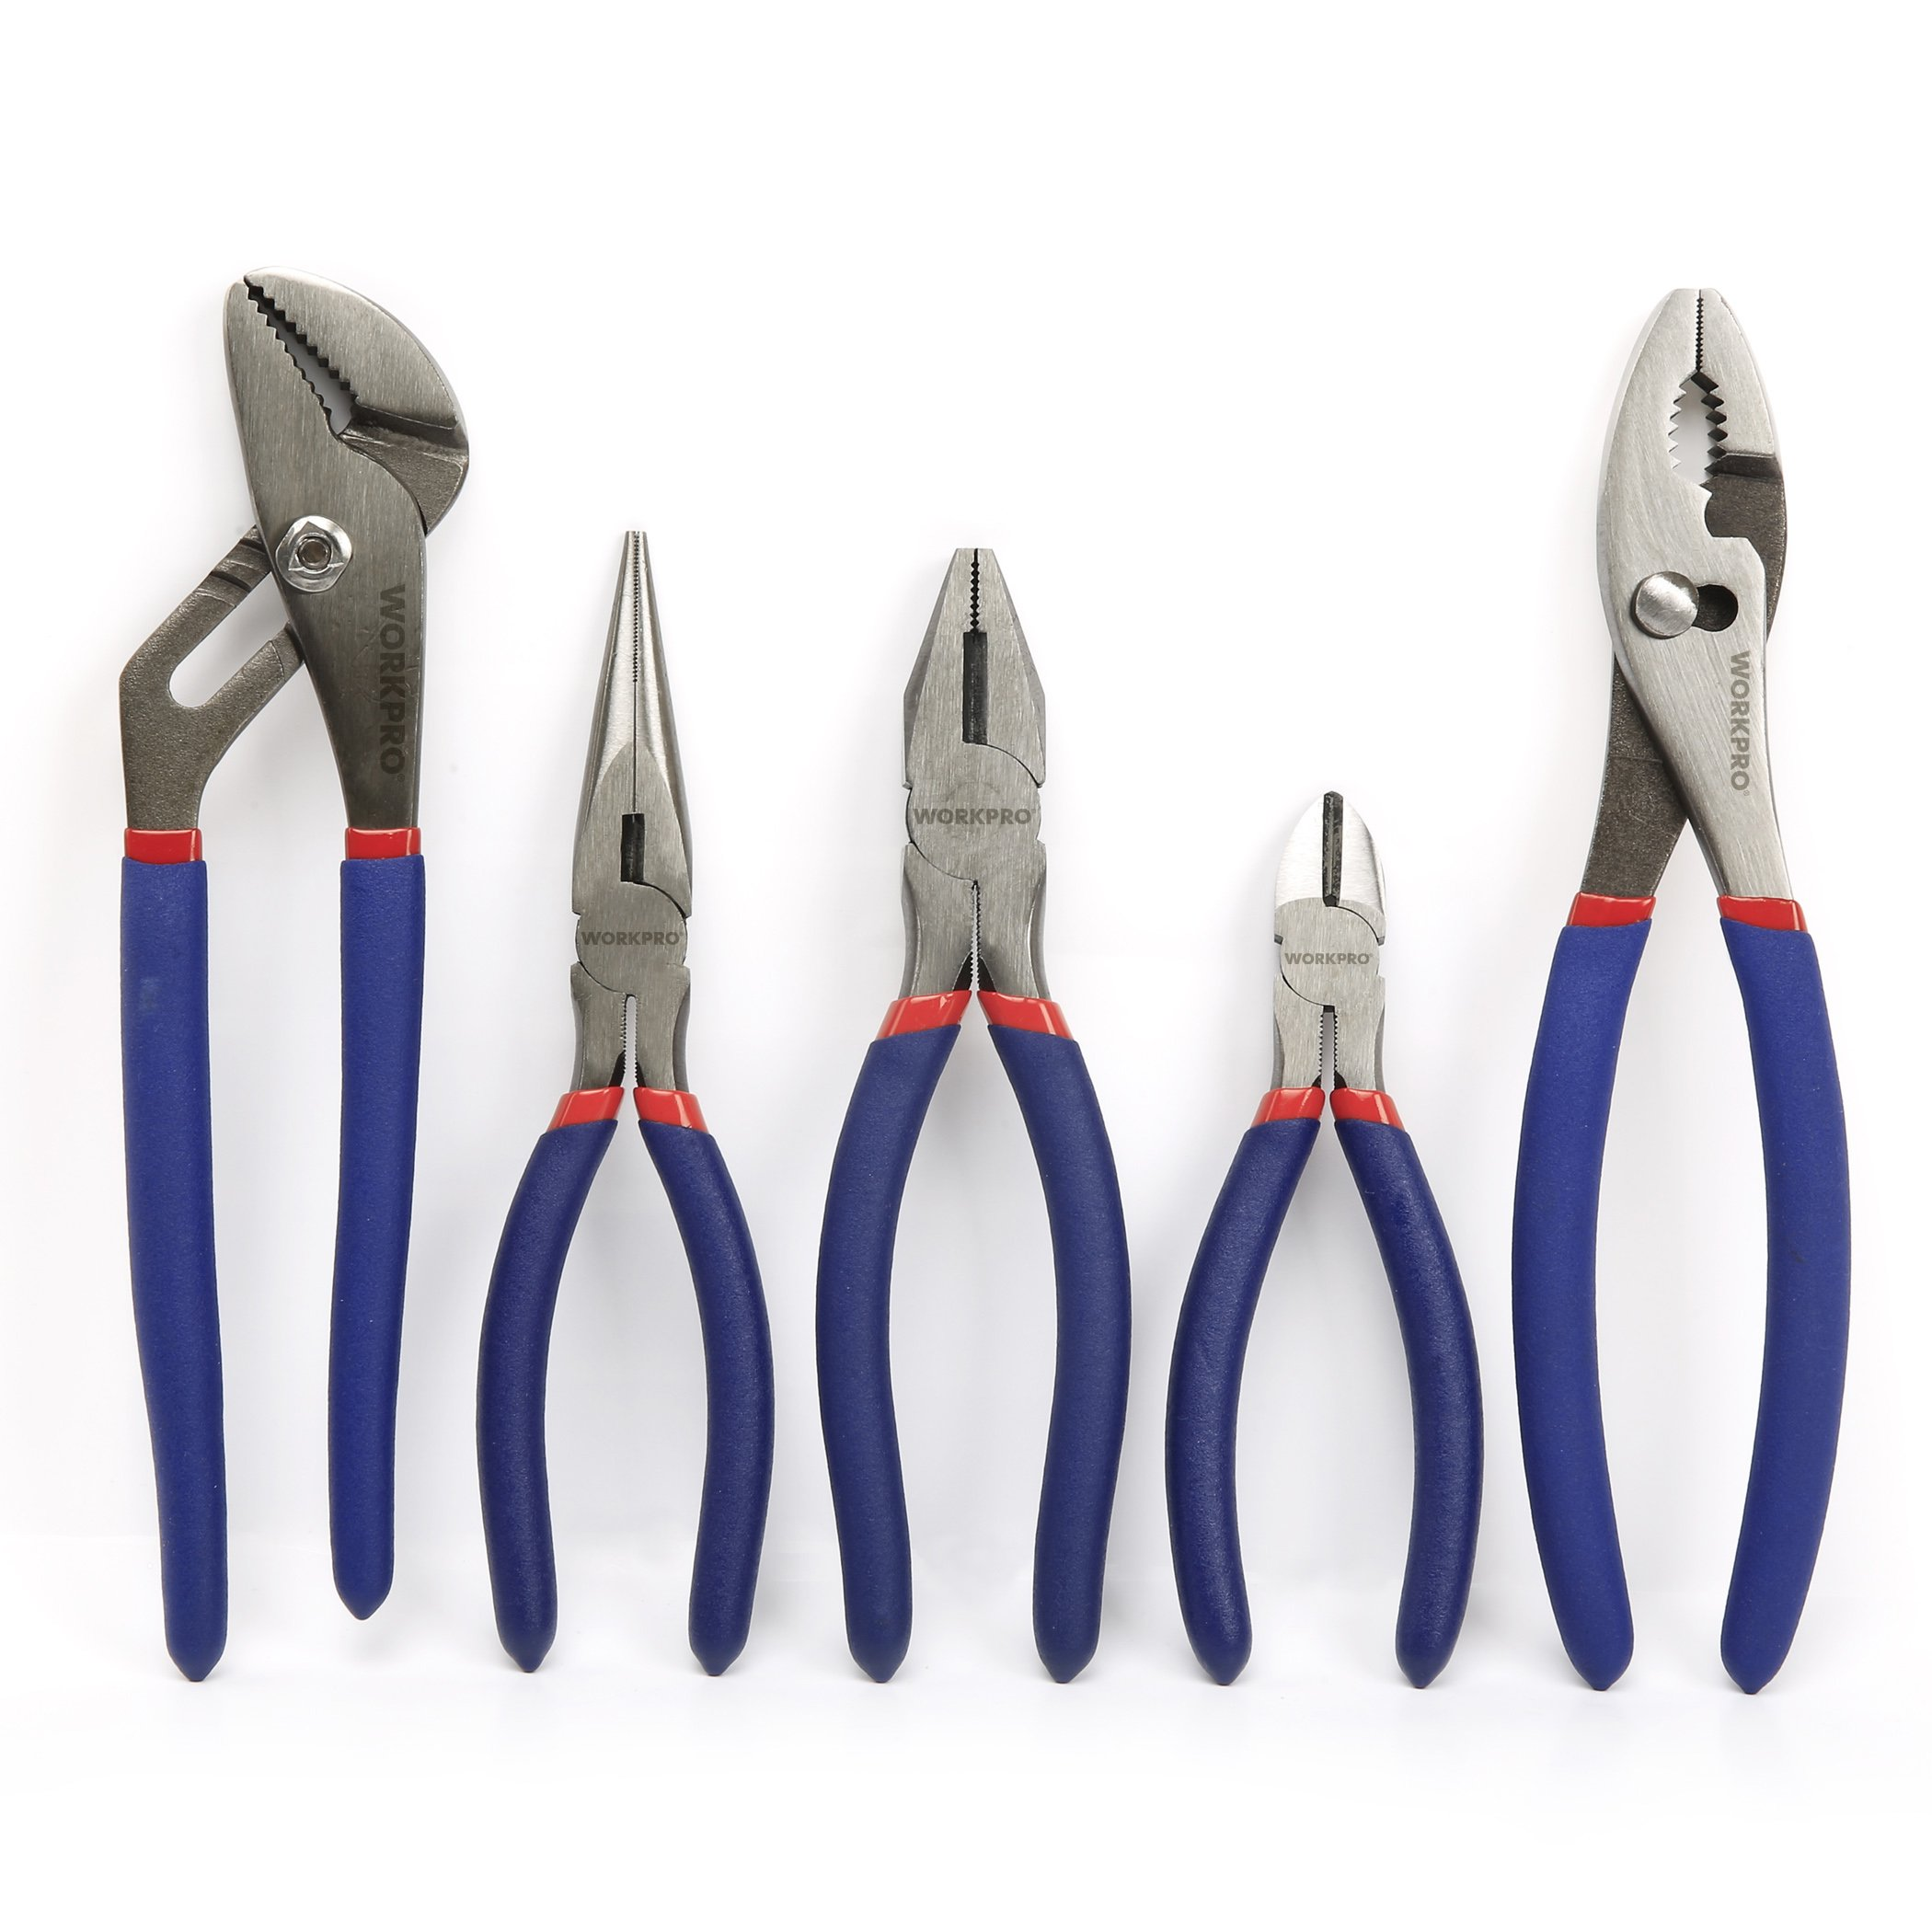 WORKPRO 5 piece Pliers Basic Homeowners